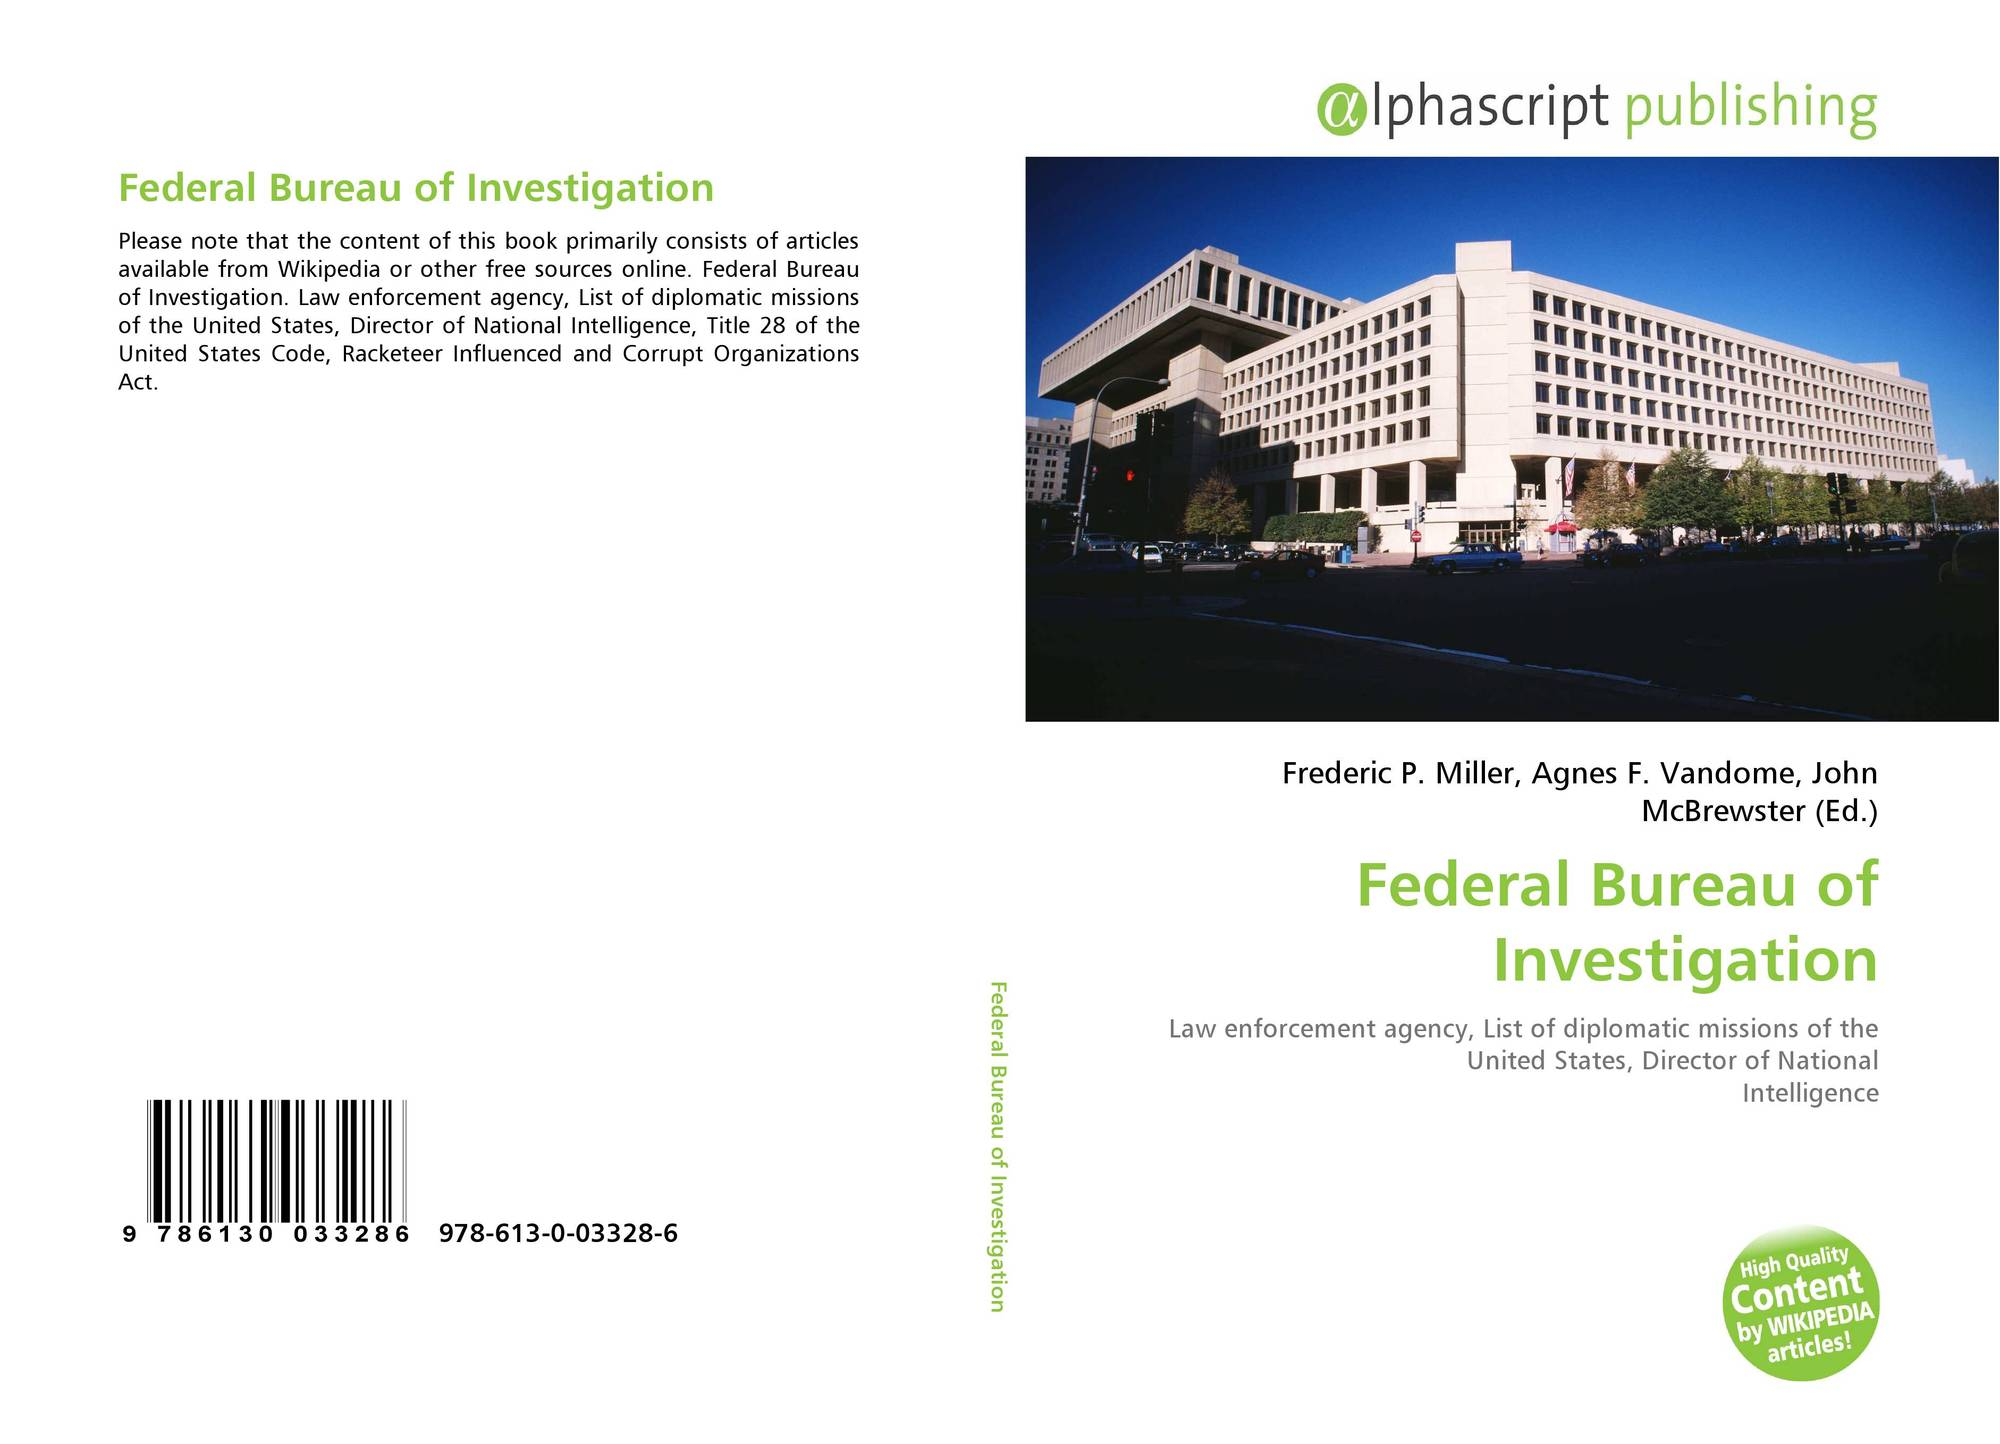 an overview of the federal bureau of investigation Fbi - federal bureau of investigation, washington, dc 22m likes welcome to the official fbi facebook page where you will find the most recent news.